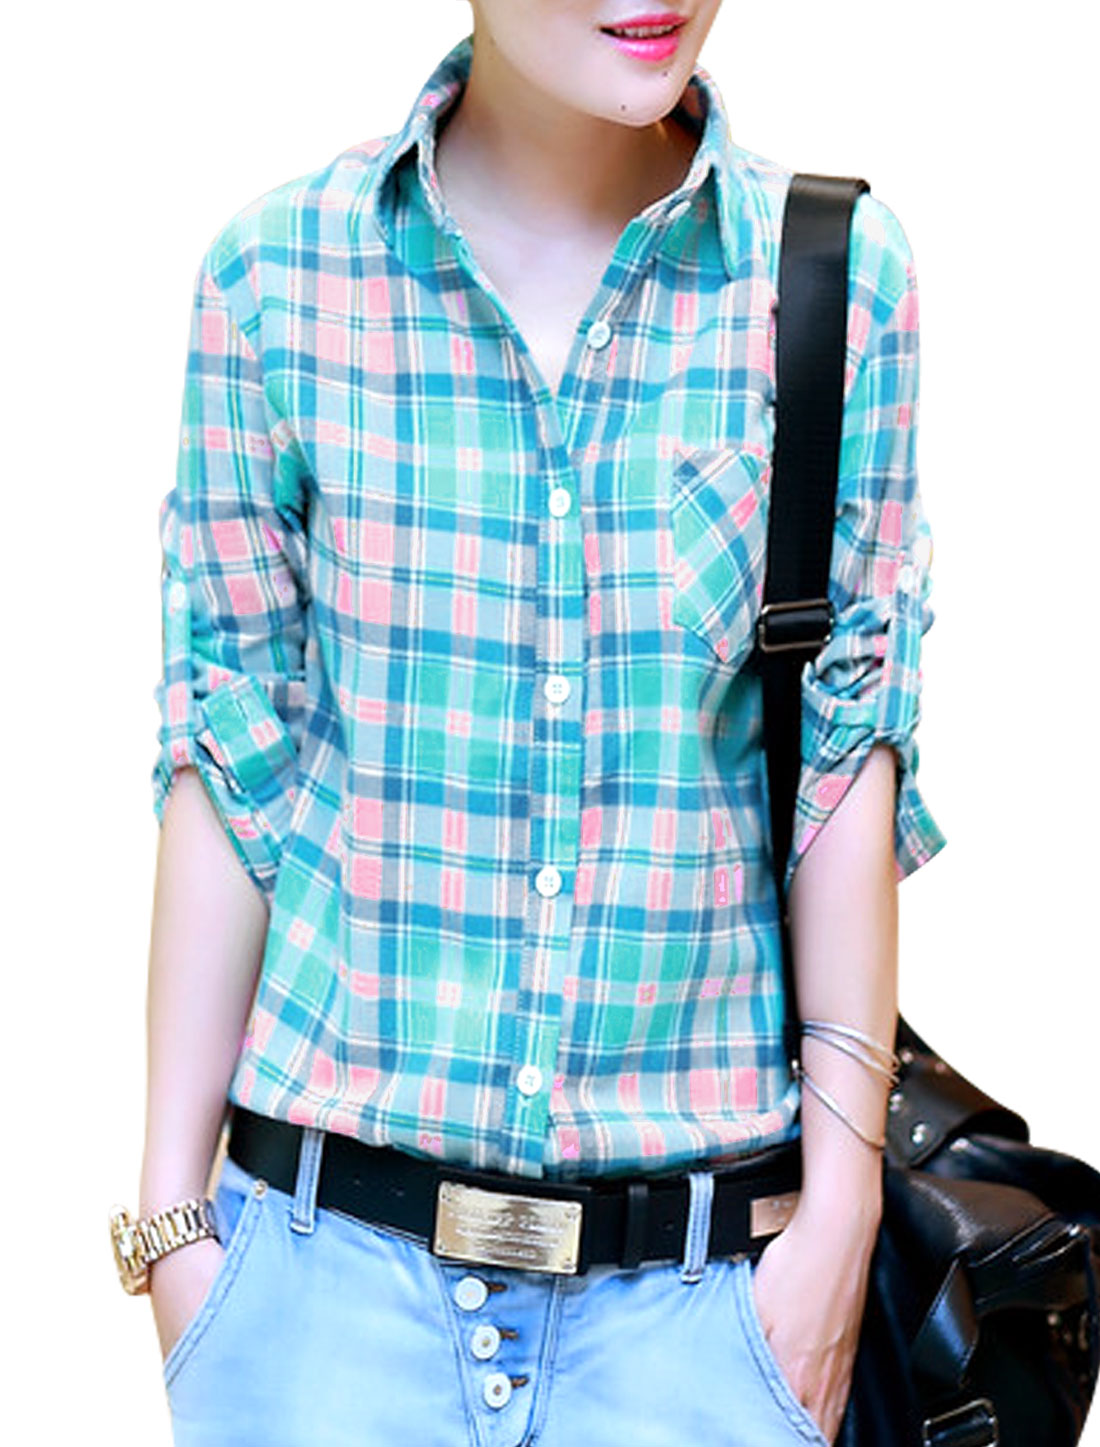 Lady Point Collar Plaids Pattern Button Cuffs Casual Shirt Blue Pink S